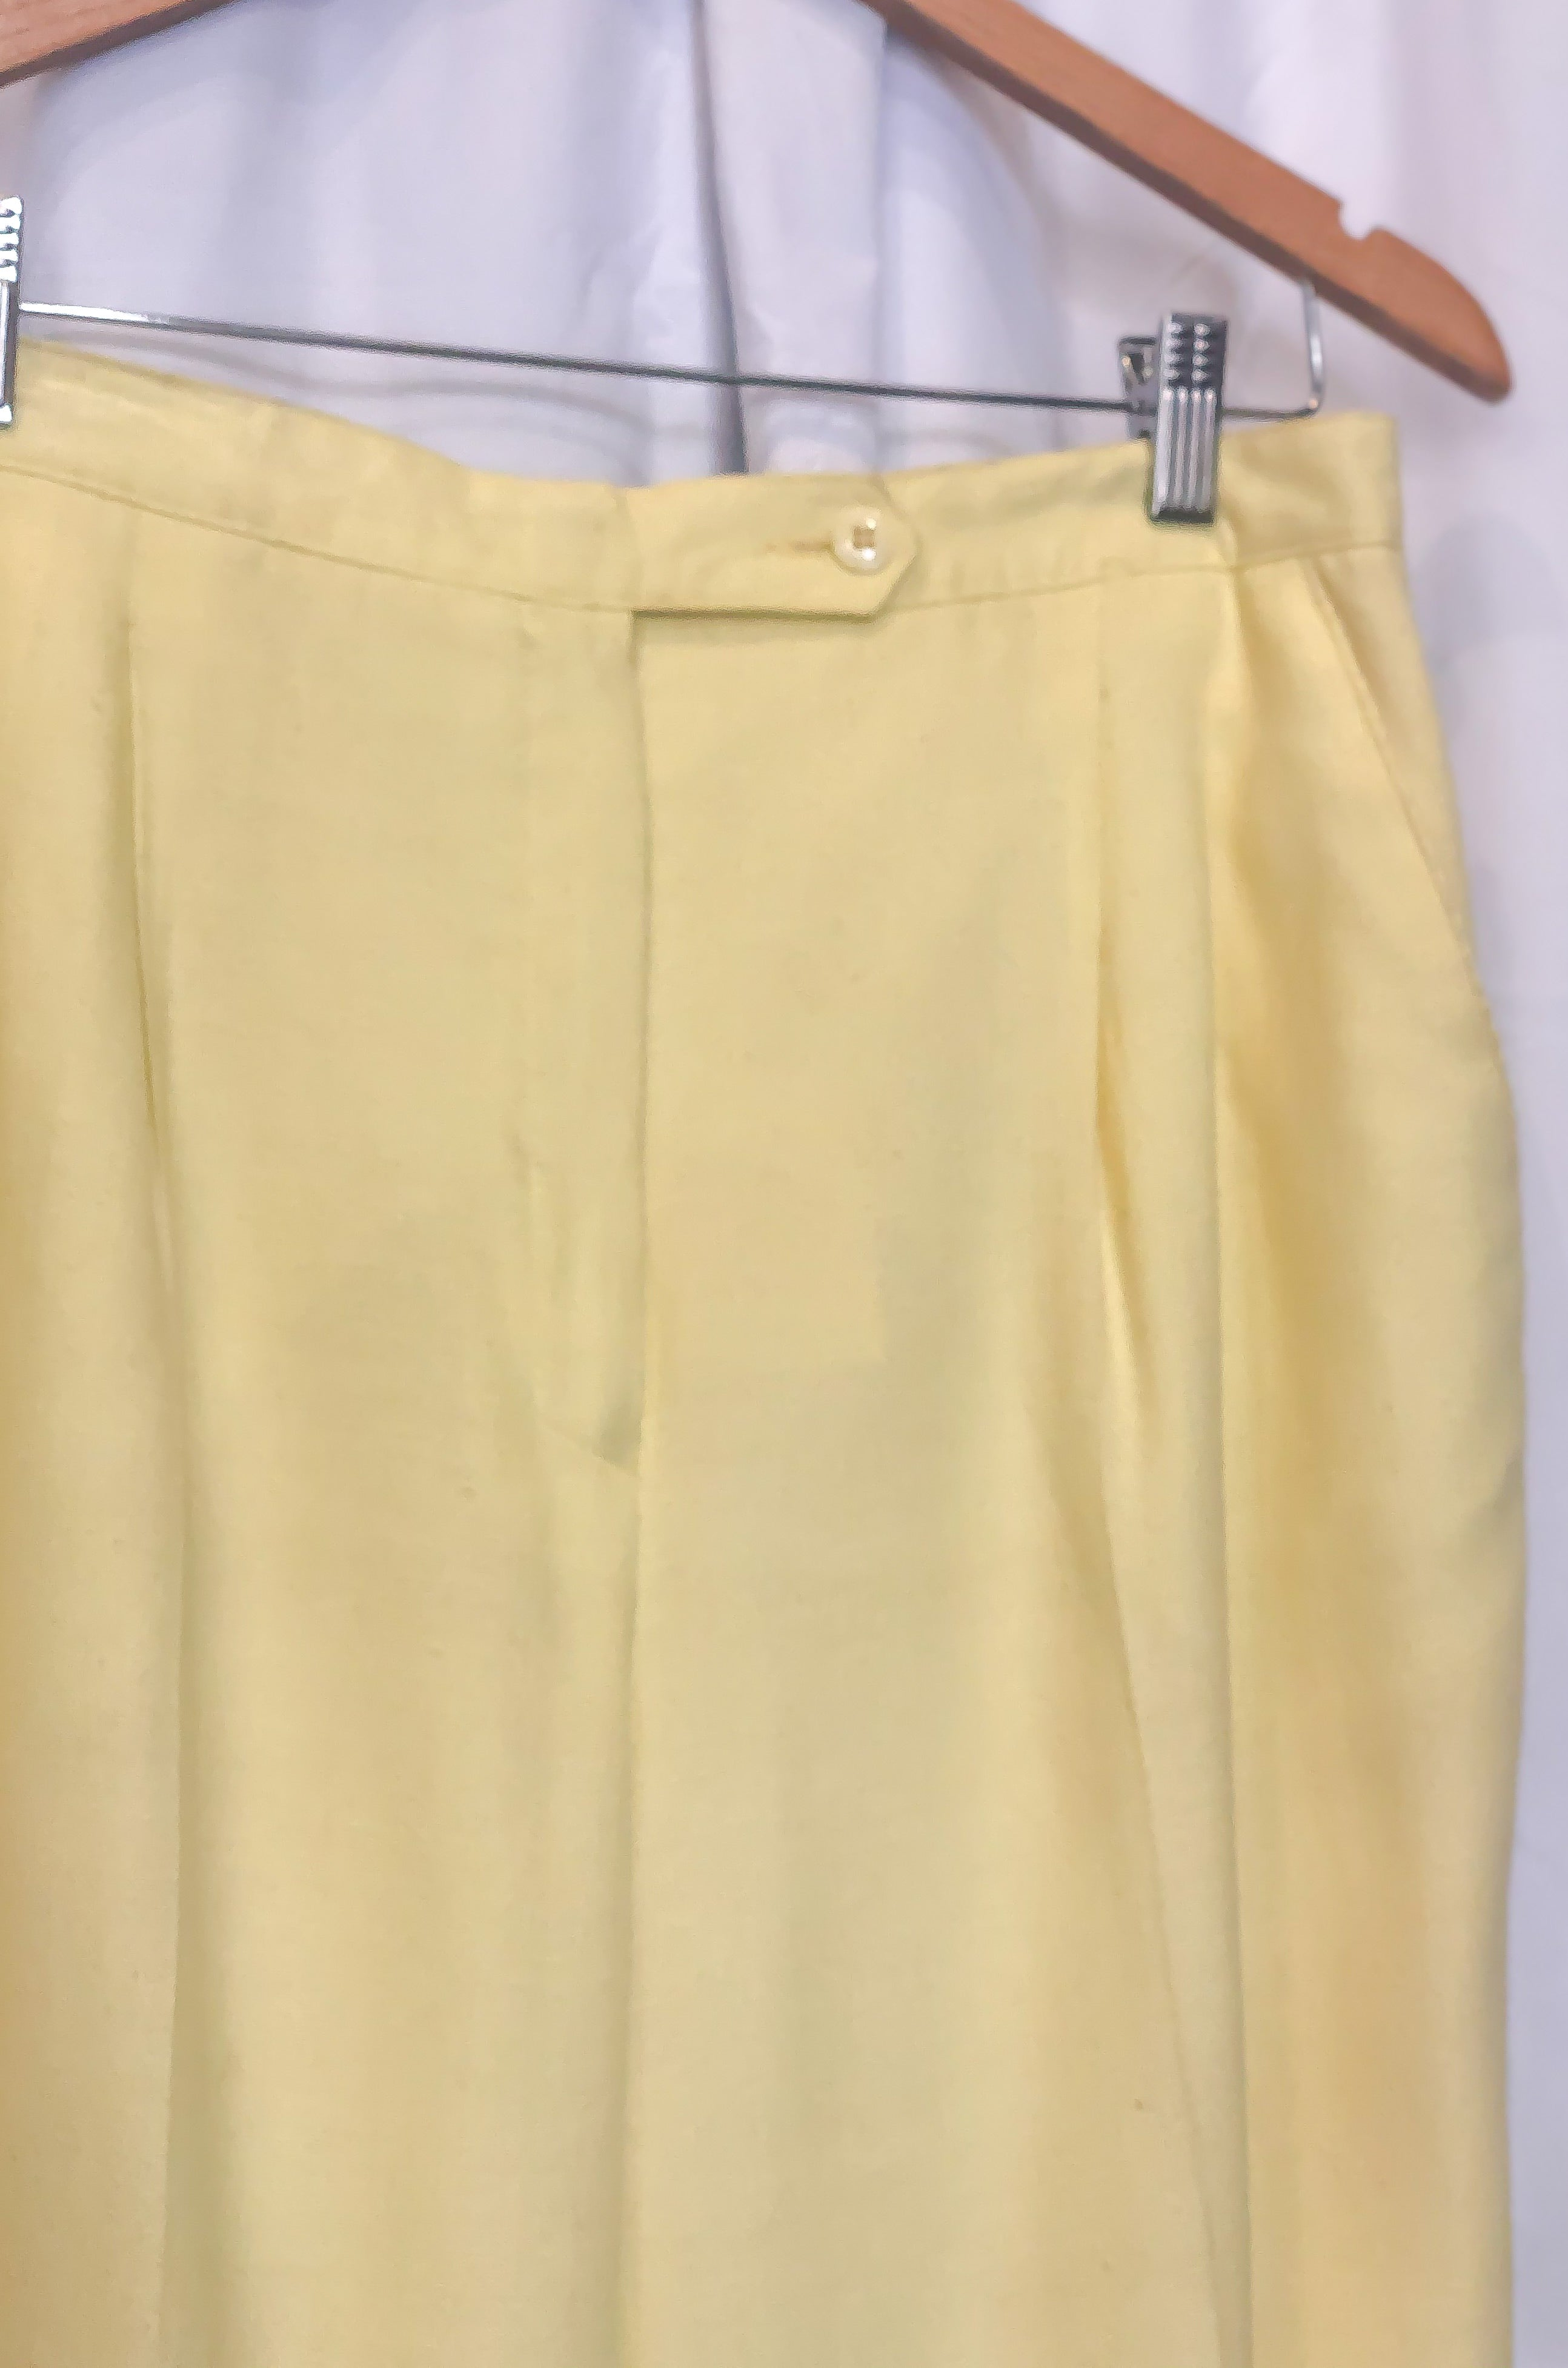 Vintage Yellow Linen Trousers / Waist 30""